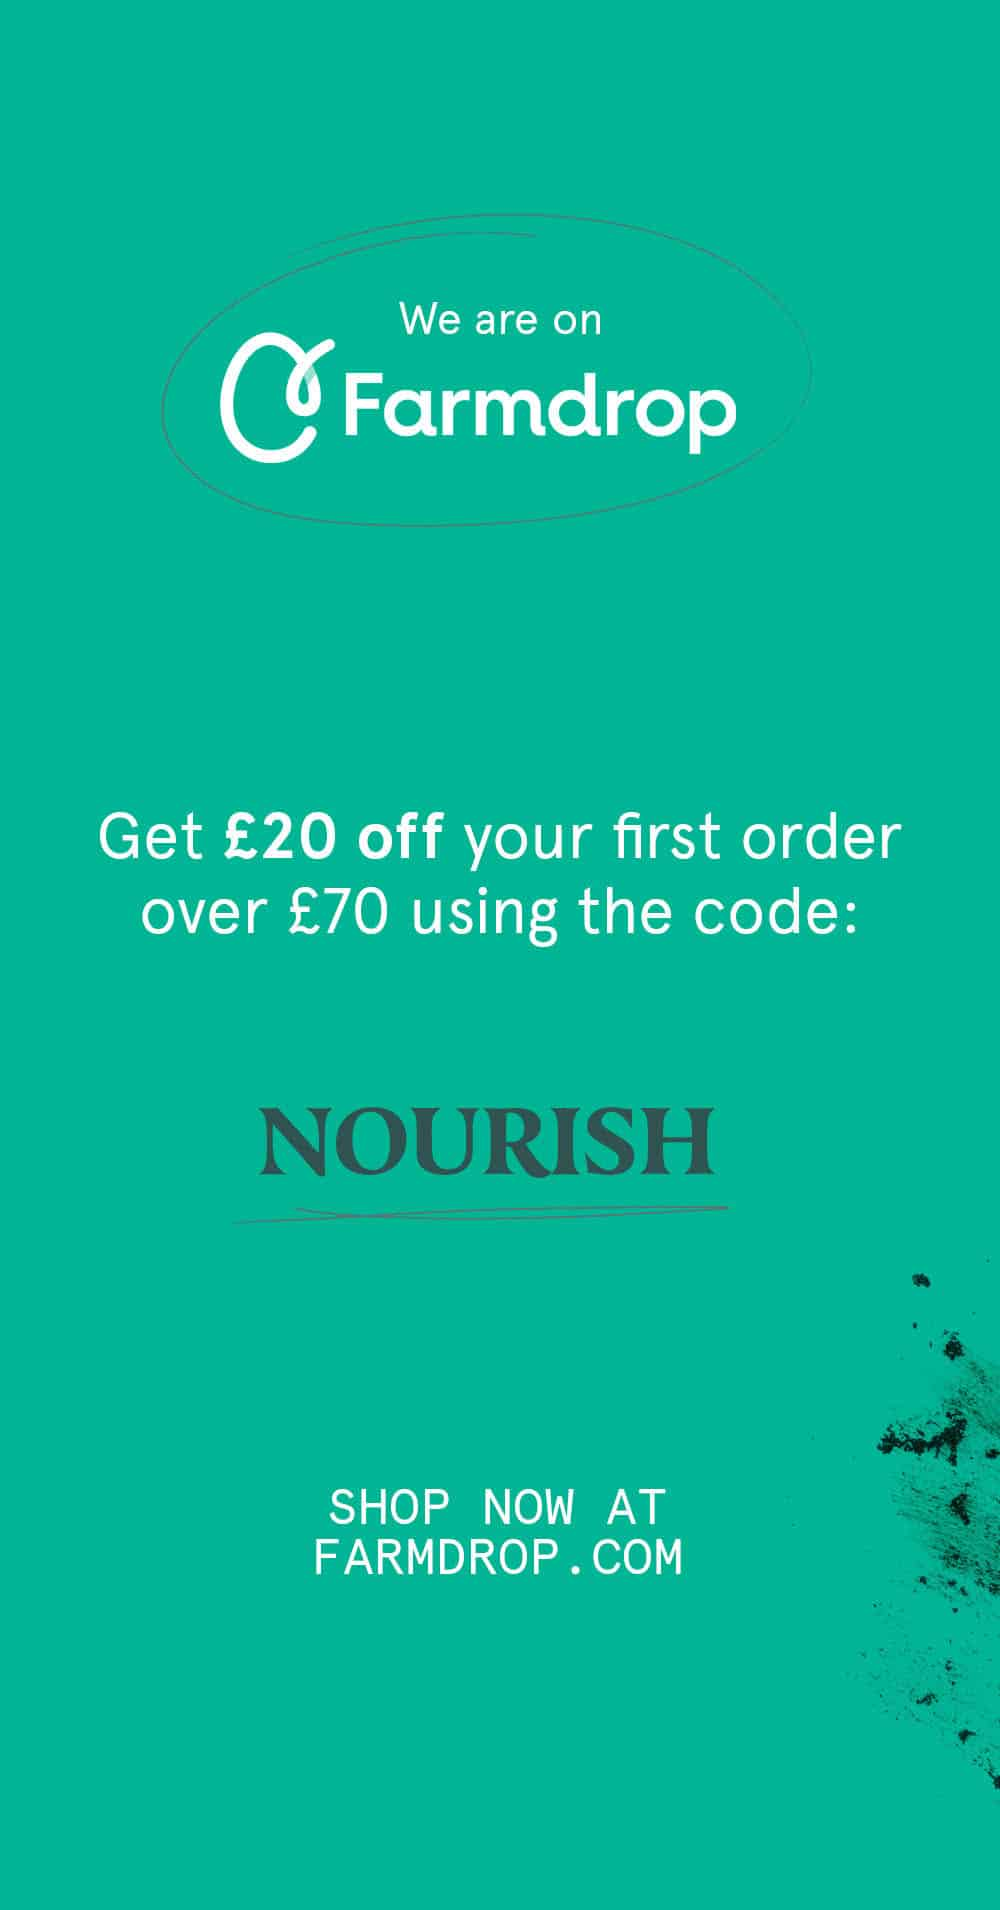 Get £20 off your Farmdrop order